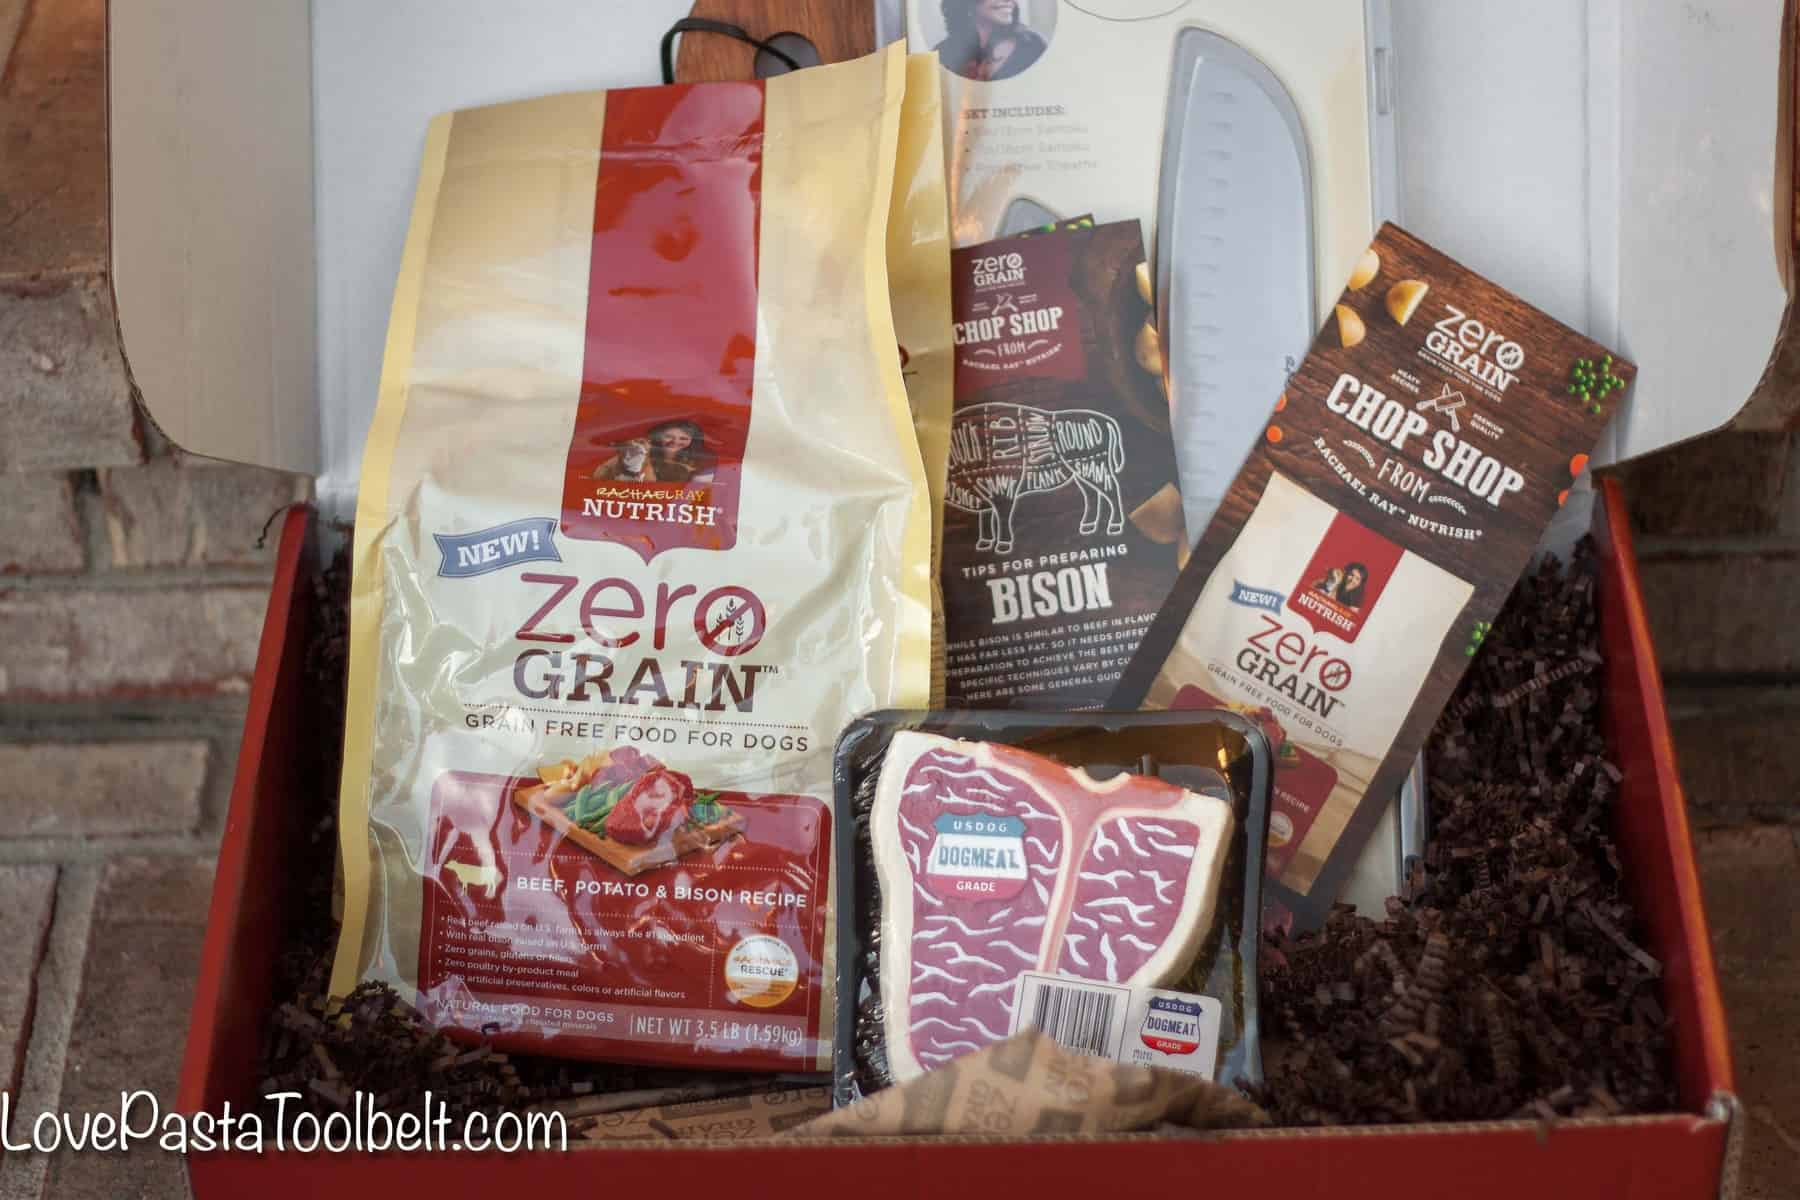 today weu0027re talking about feeding a picky dog with rachael ray nutrish zero